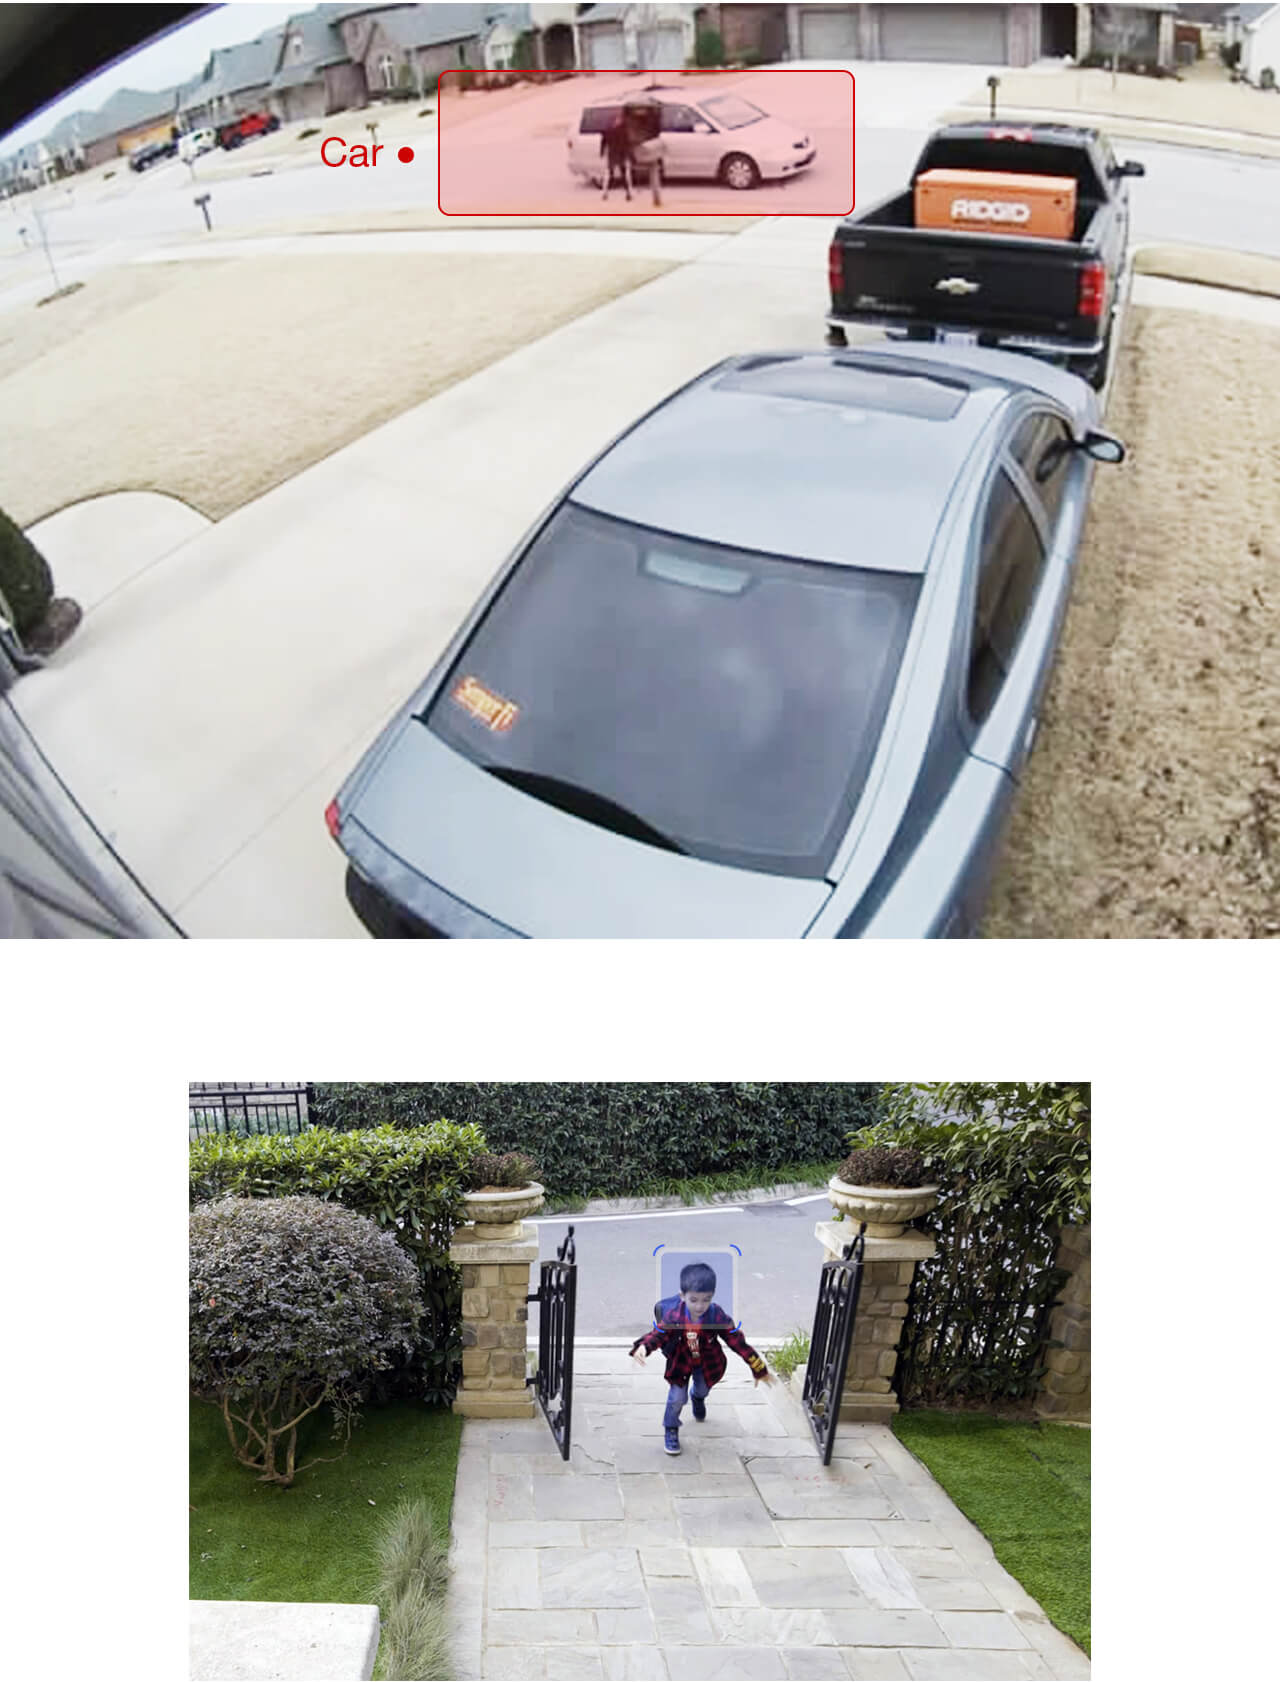 SimCam Alloy 1S can alert you if an unknown car stops outside your house for longer than 15 seconds